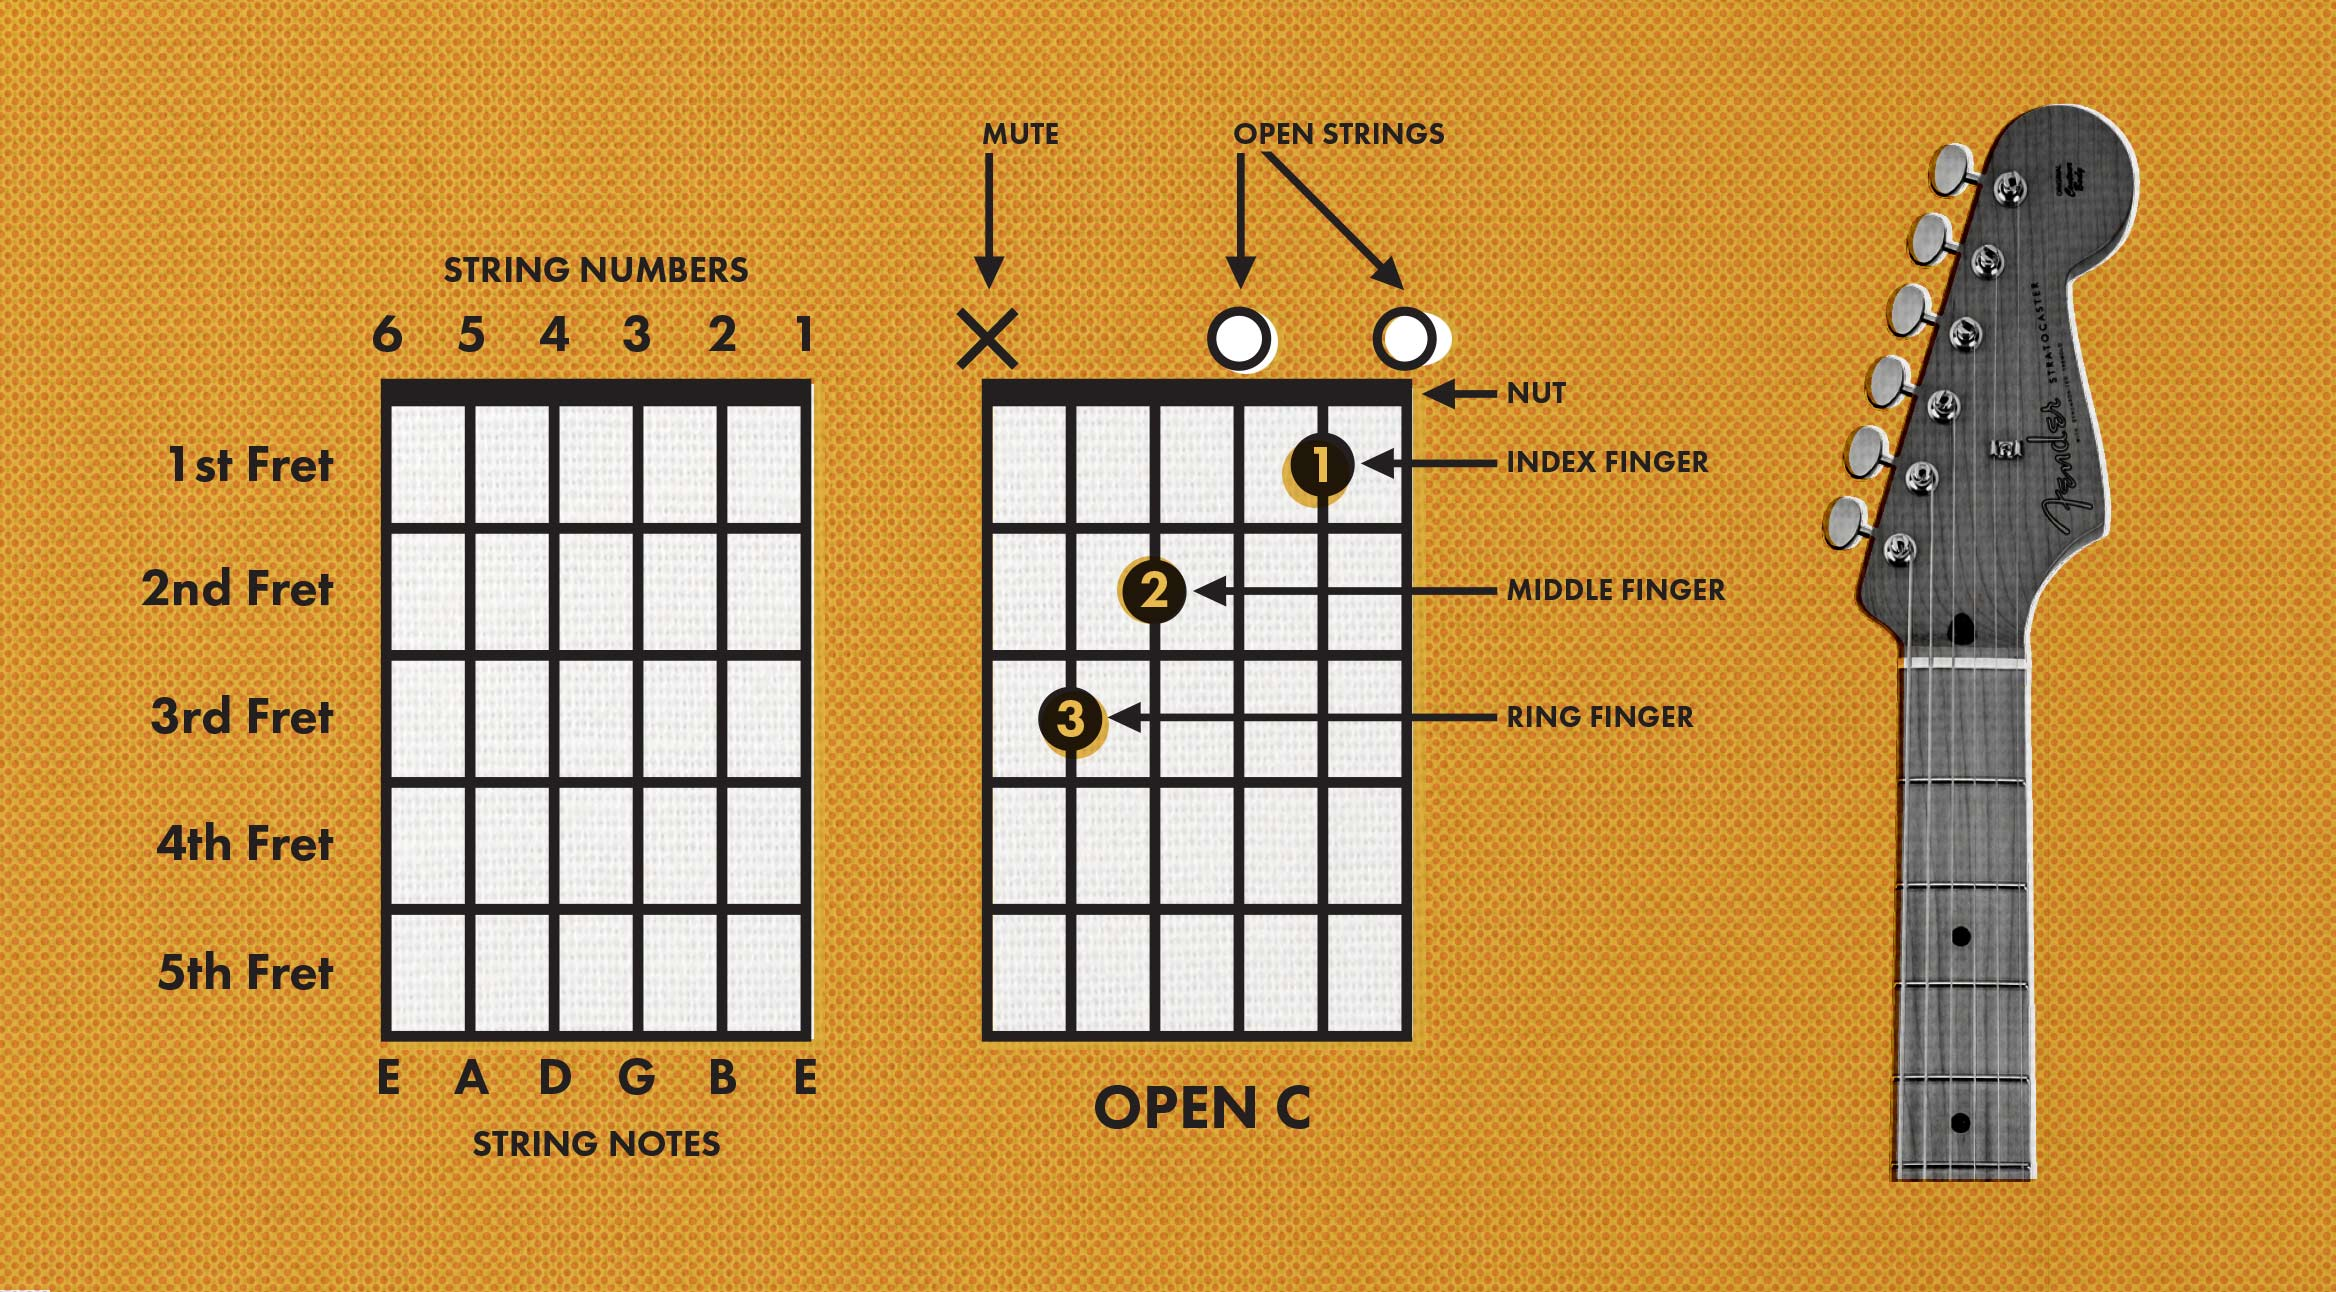 Chords In Electric Guitar : how to read guitar chords chord charts fender ~ Hamham.info Haus und Dekorationen